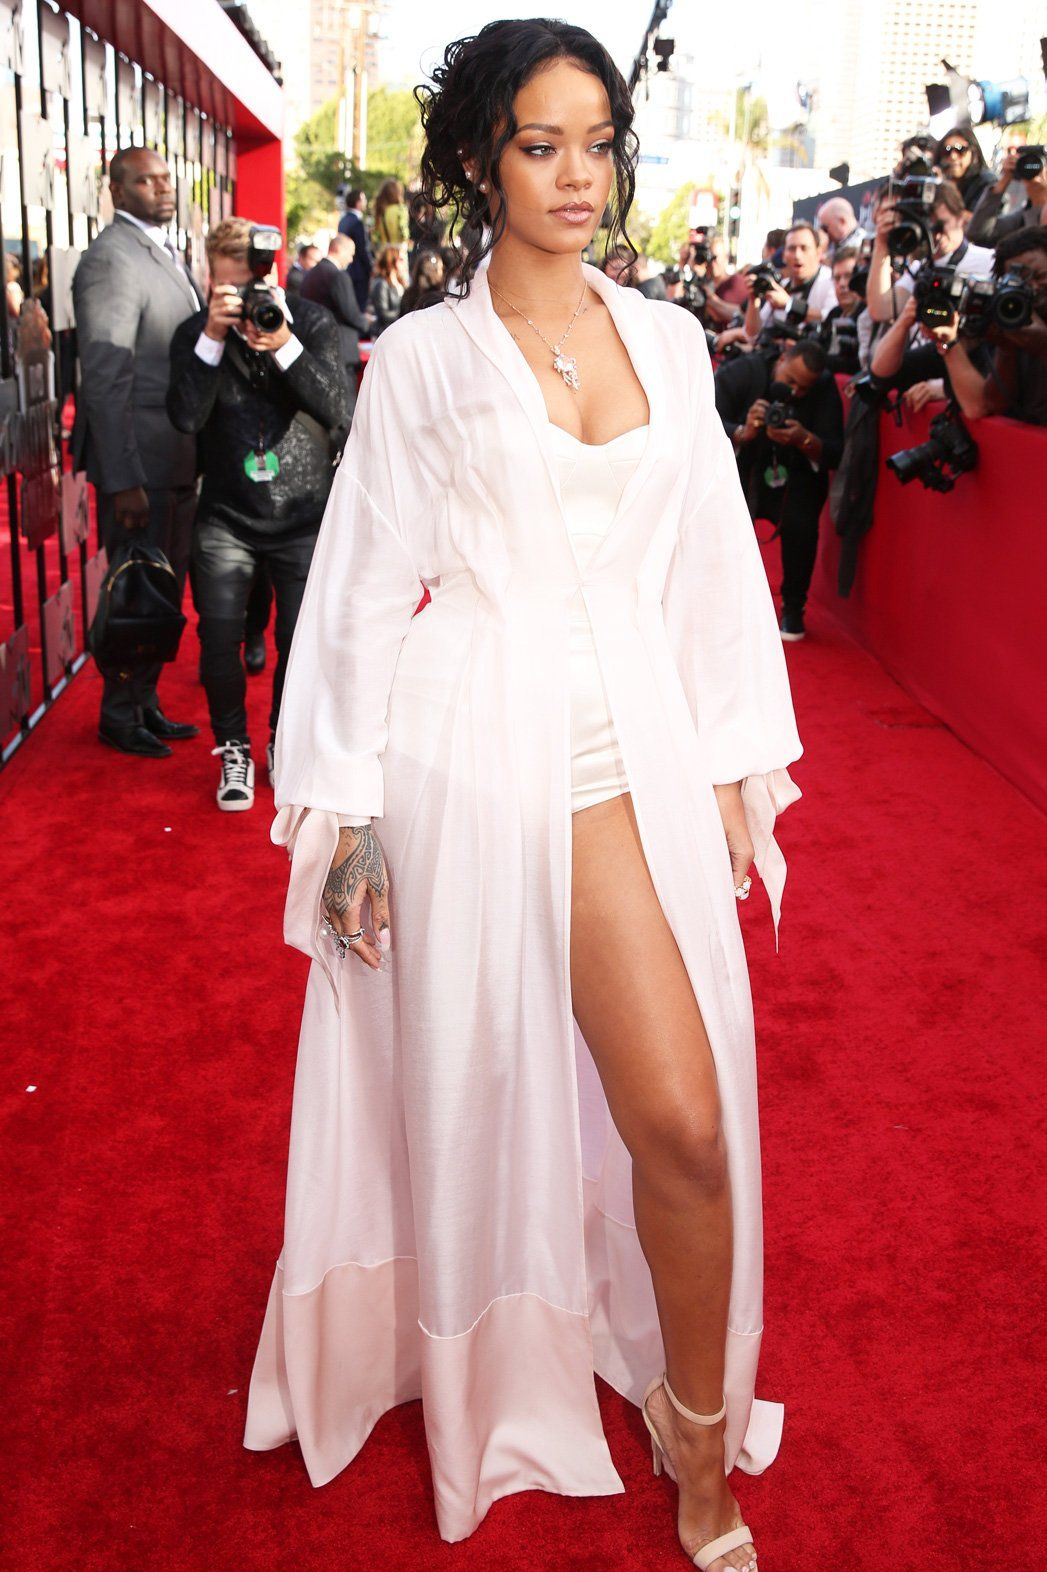 Rihanna Roter Teppich Only Girl In The Fashion World Rihanna S 15 Best Red Carpet